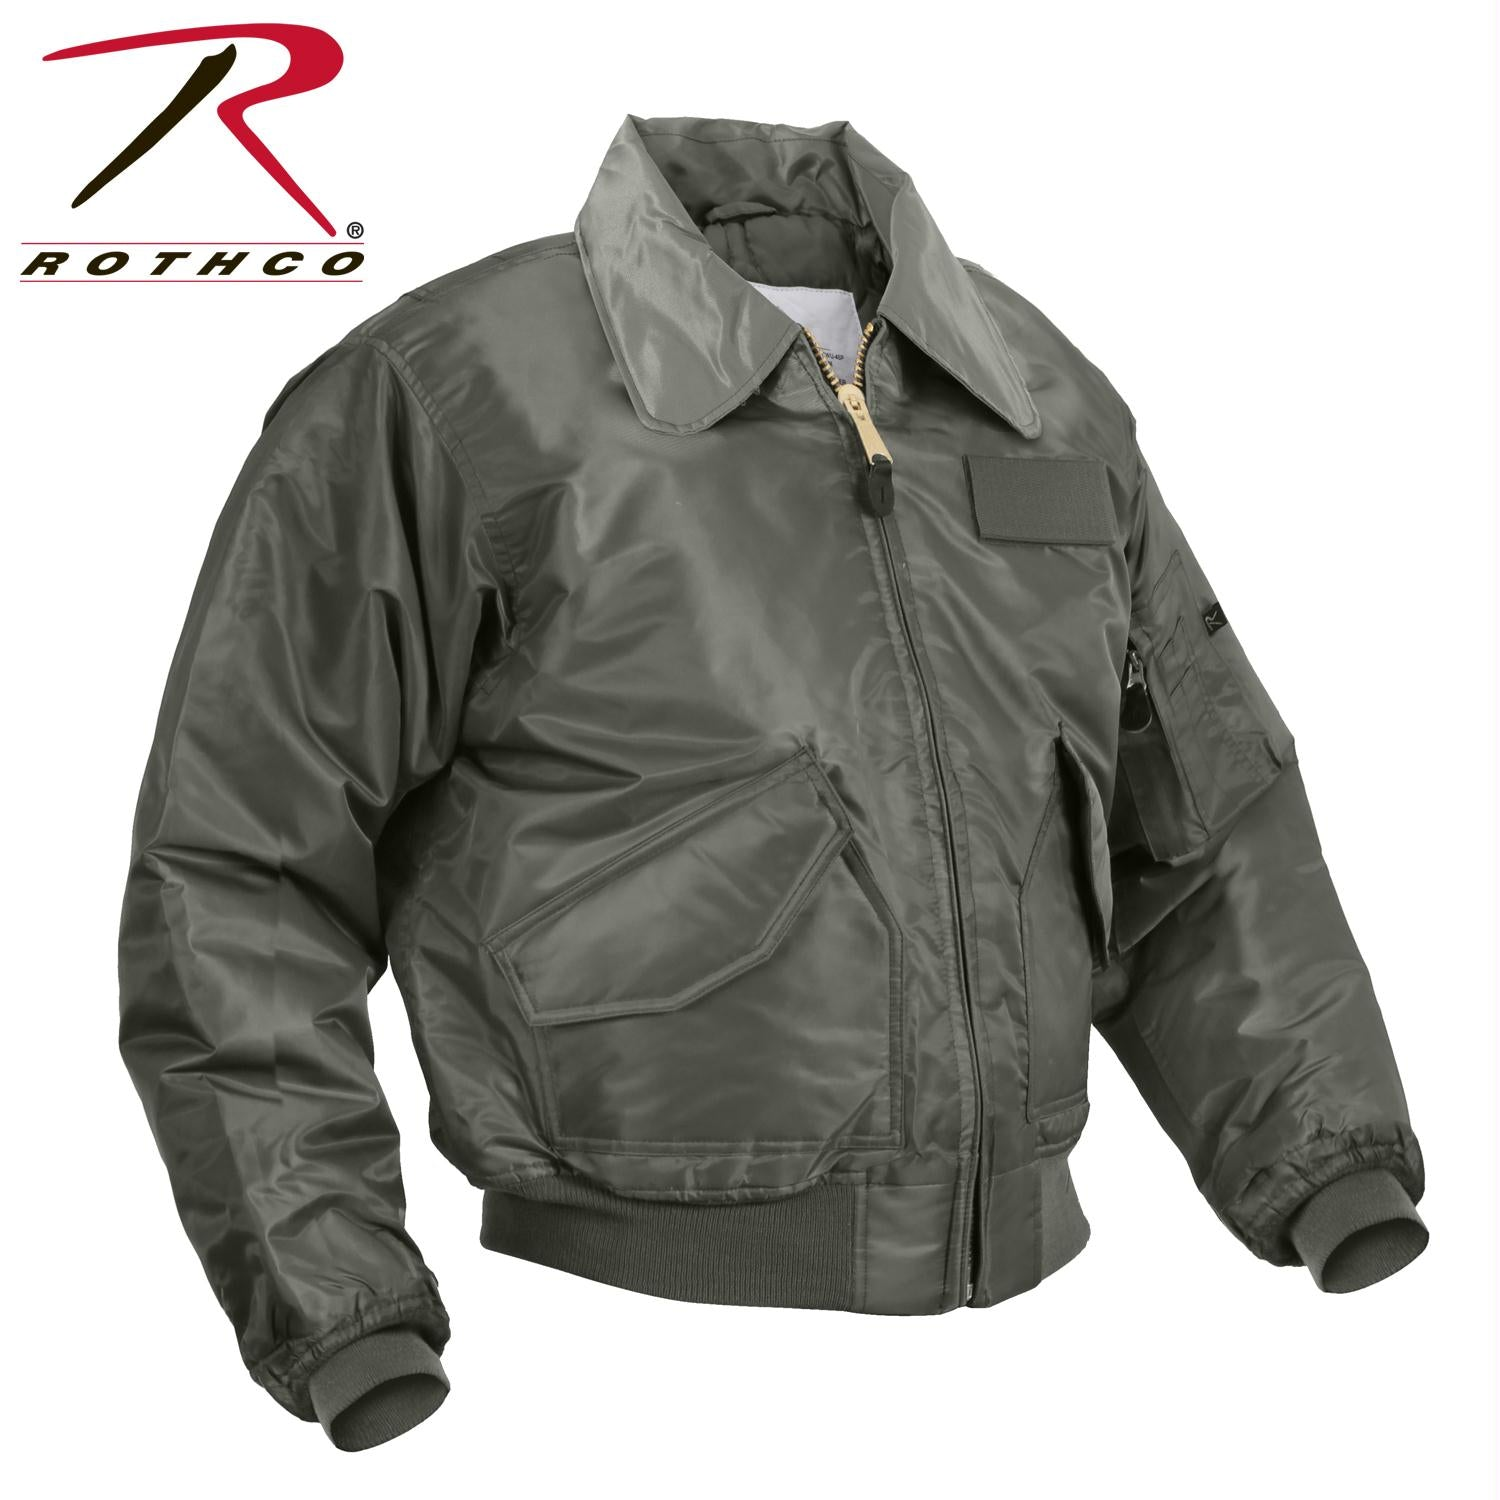 Rothco CWU-45P Flight Jacket - Sage Green / 3XL